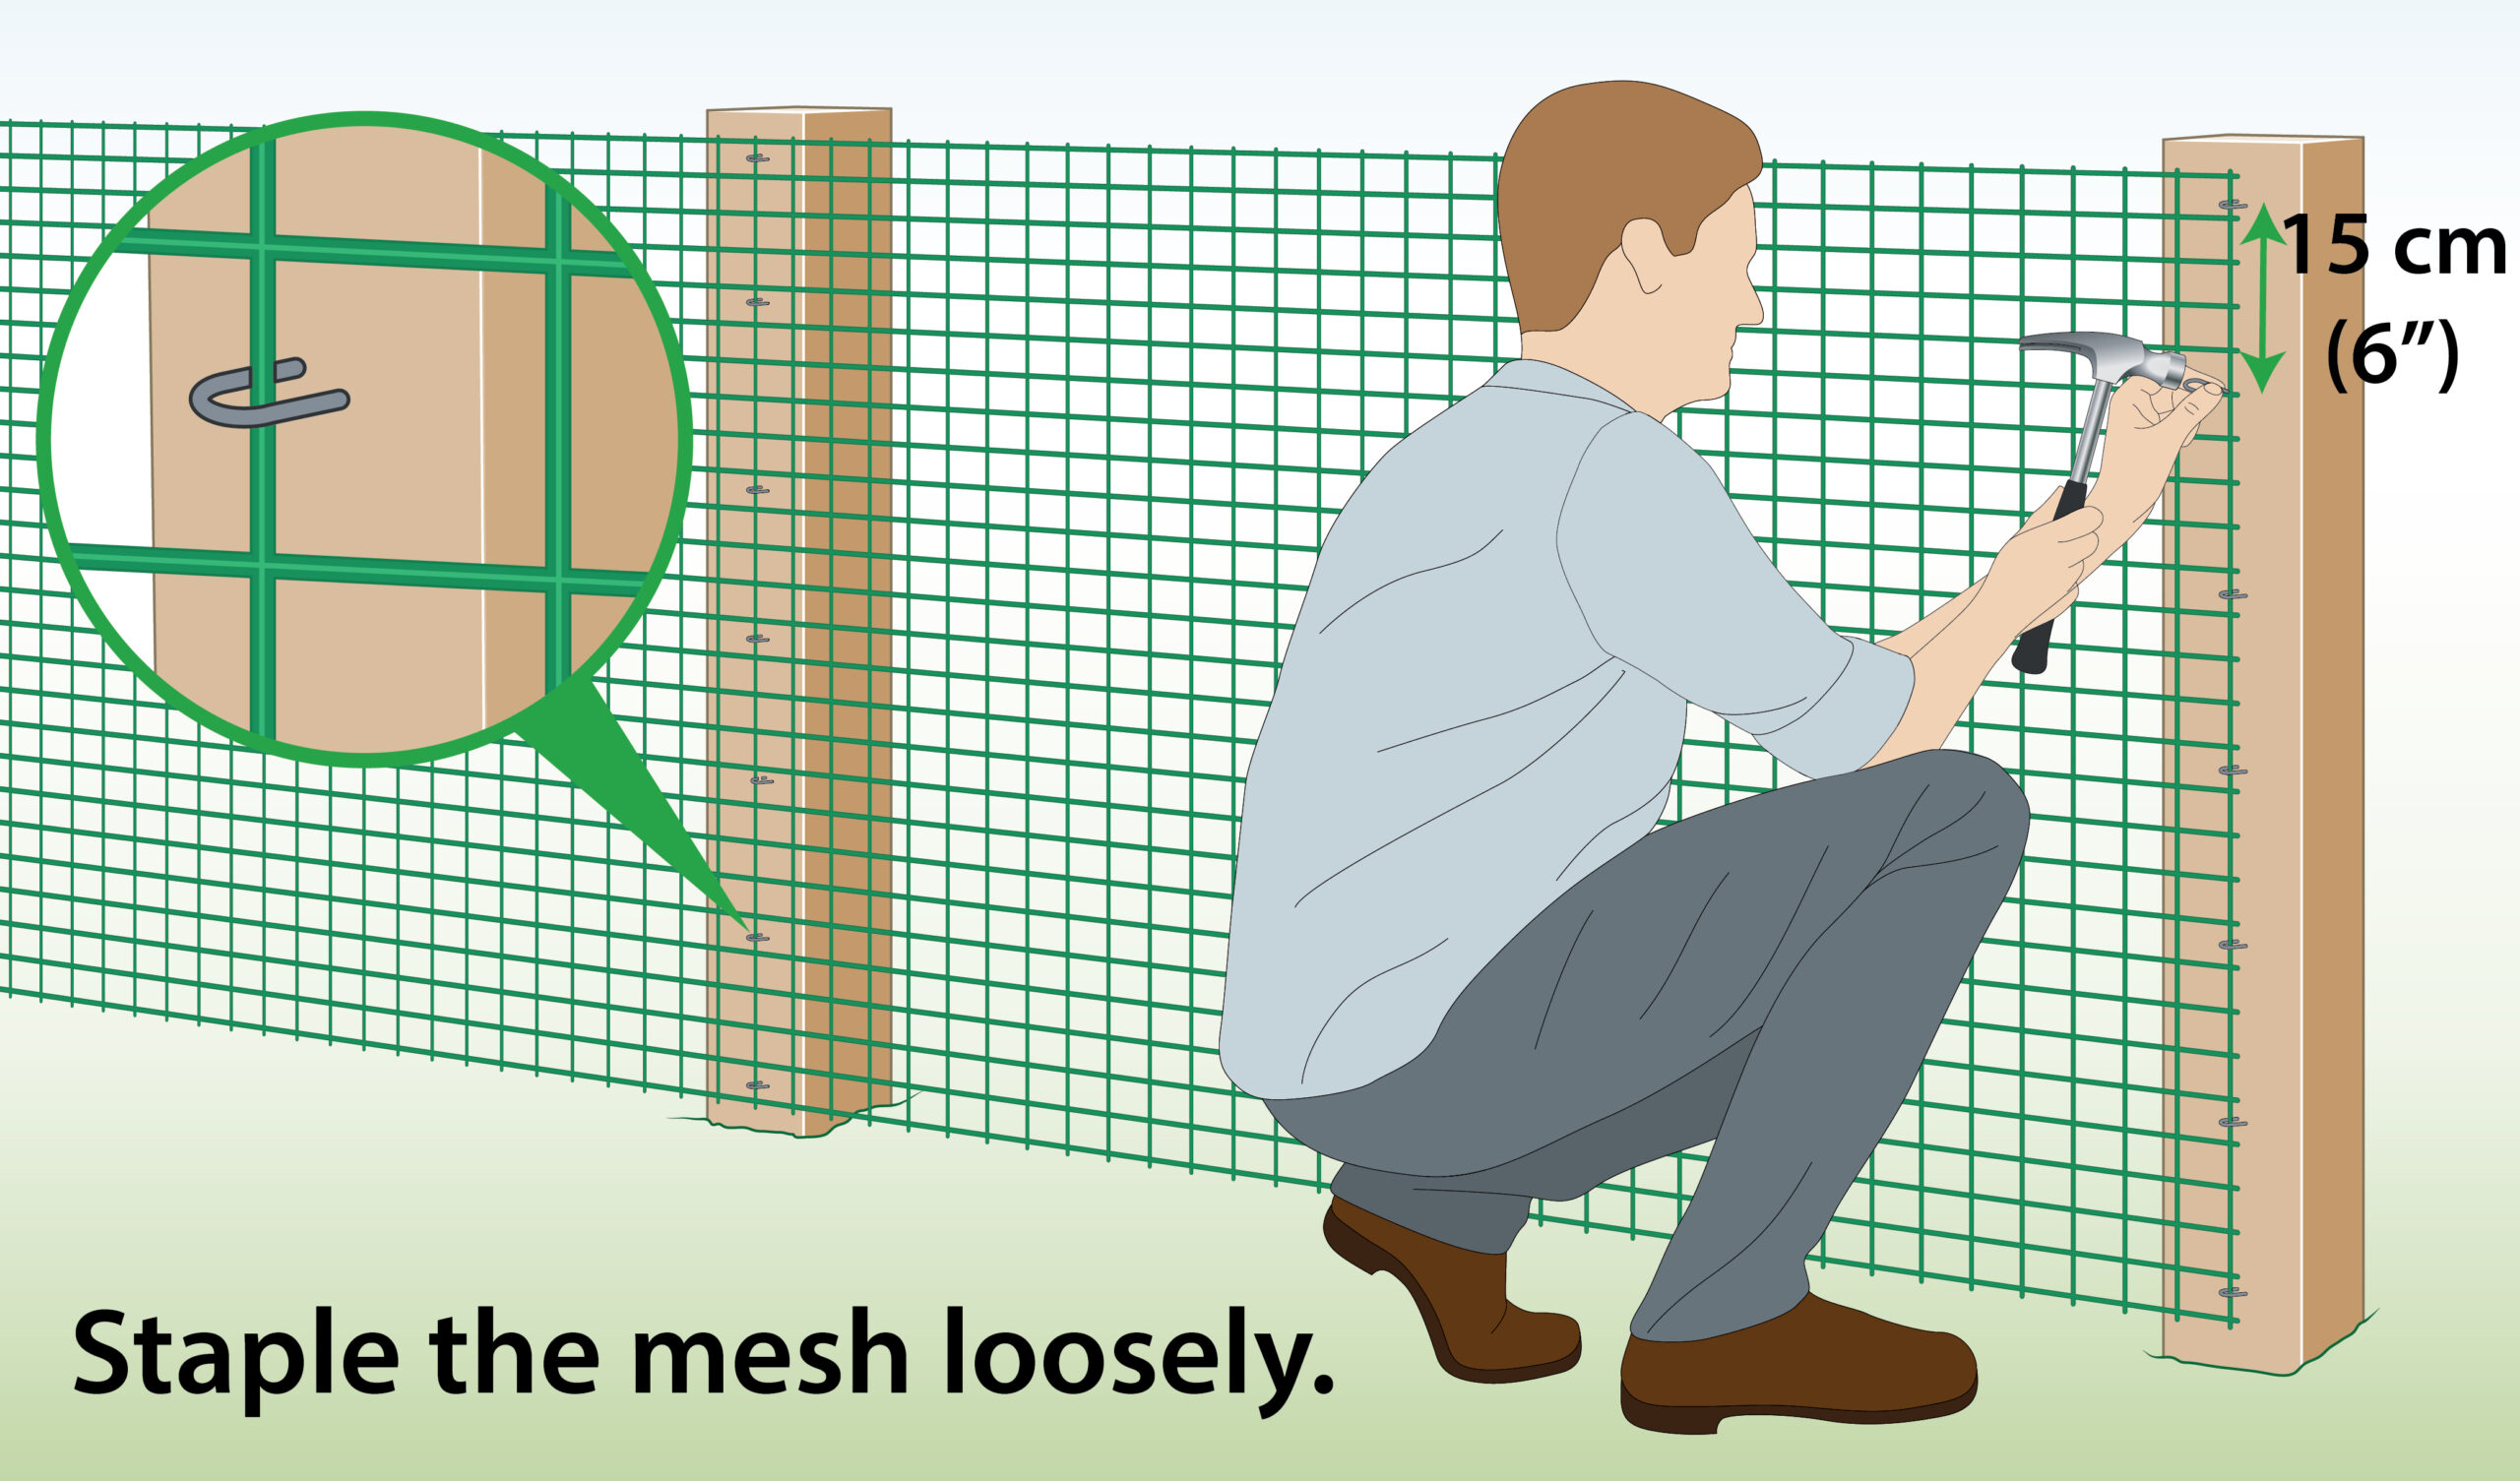 attach-plastic-mesh-to-wooden-posts-with-staples